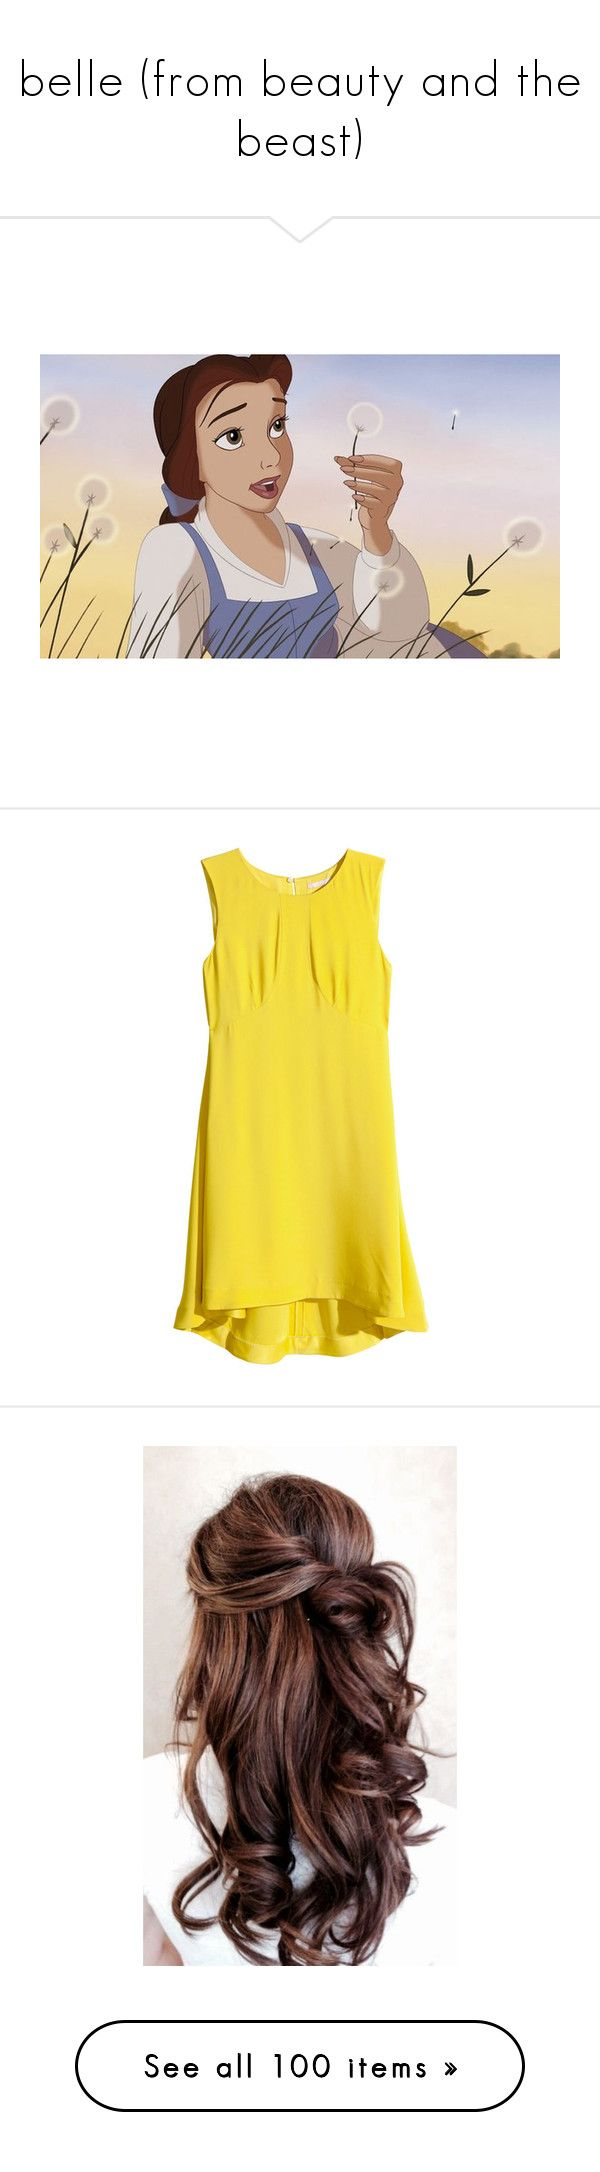 """""""belle (from beauty and the beast)"""" by elyr5 ❤ liked on Polyvore featuring disney, beauty and the beast, backgrounds, belle, art, dresses, h&m, tops, vestido and neon yellow"""